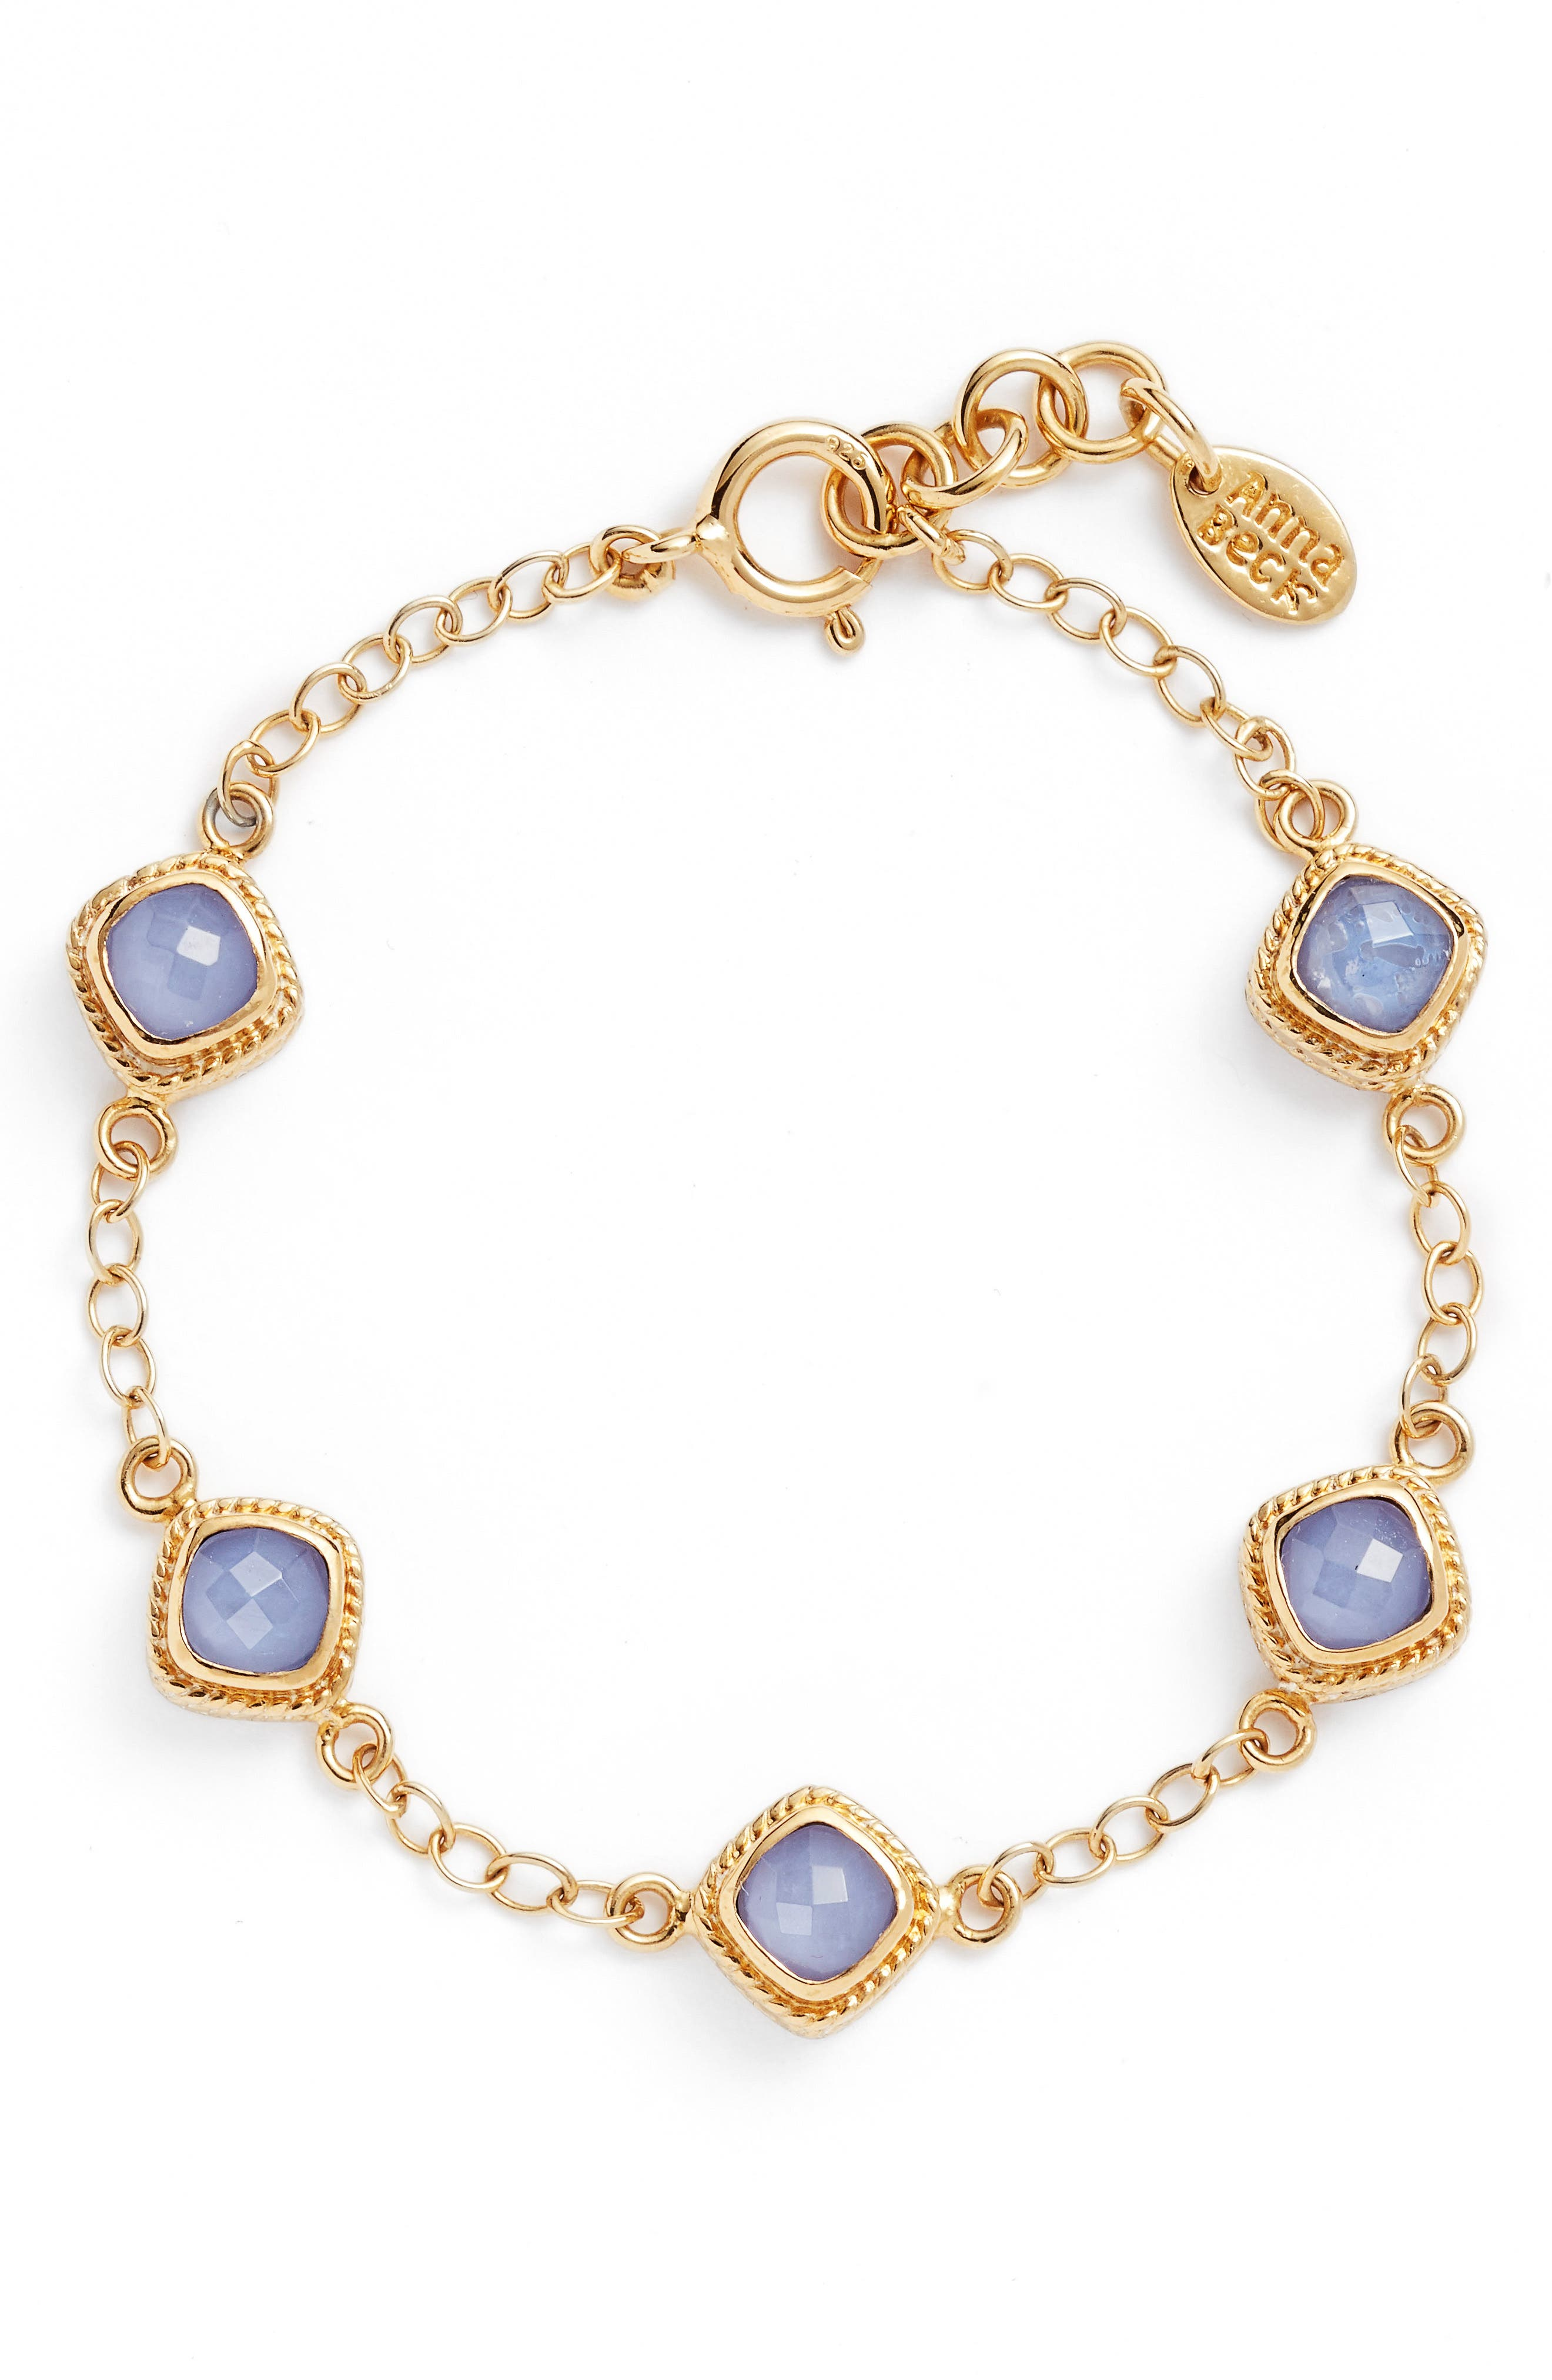 Station Bracelet,                         Main,                         color, Gold/ Blue Chalcedony